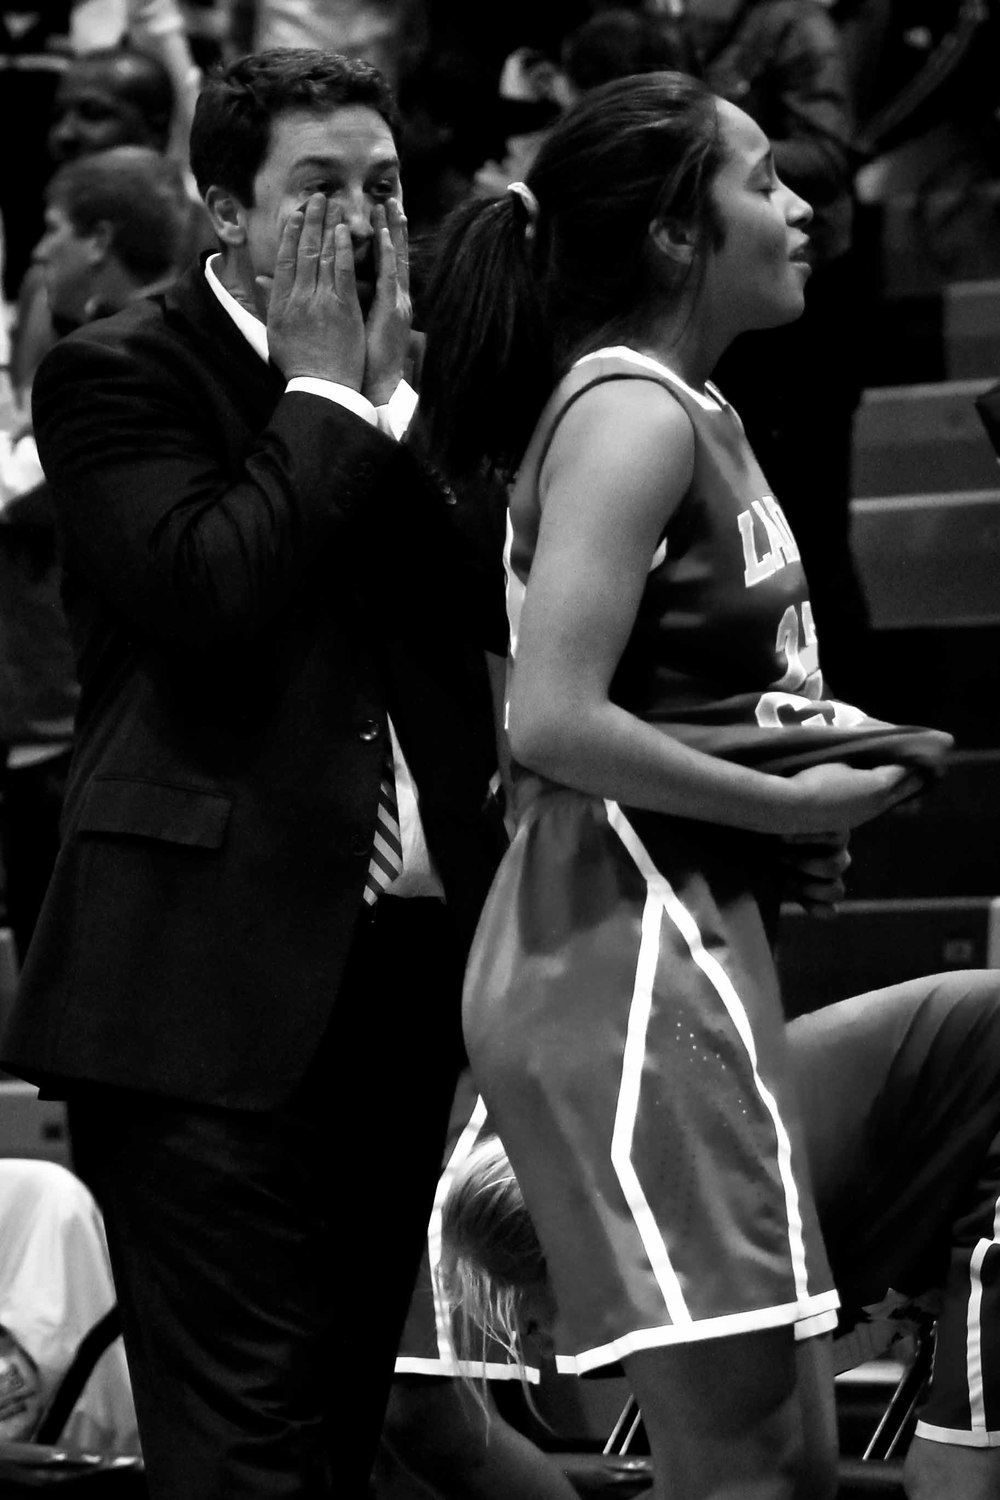 The Lady Caps fell to the Hillside Hornets 90-64 in the second round of the playoffs.  Coach McCorkle feels every loss acutely. Although he doesn't coach full time, he spends all of his free time devoted to the Lady Caps. Before important games, he often texts his assistant coaches late into the night with last minute game strategies.